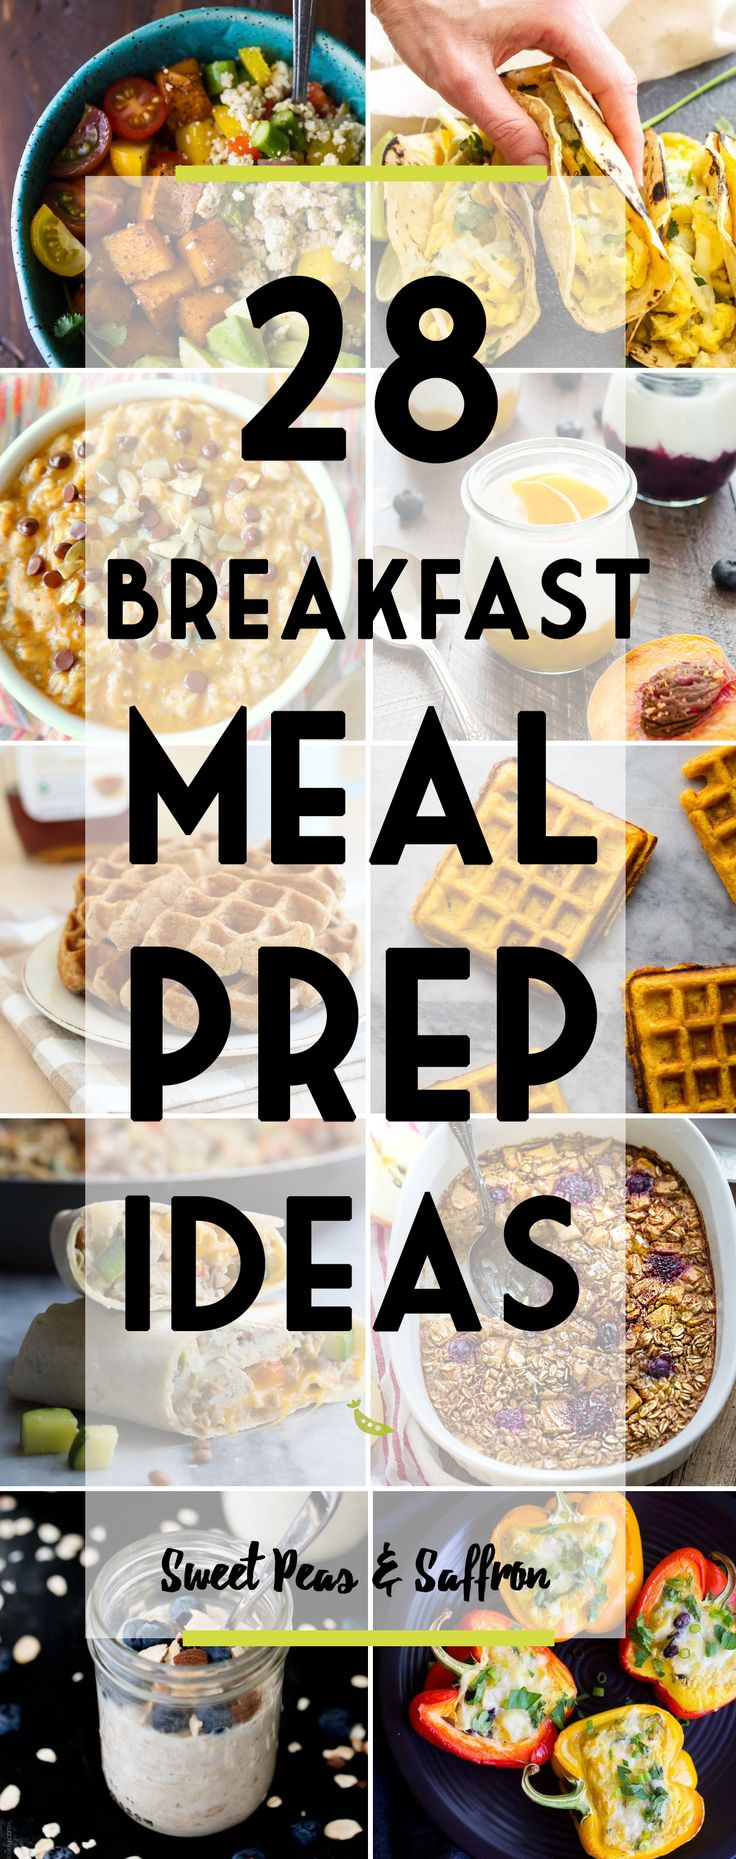 28 Healthy Breakfast Meal Prep Ideas: egg-based, oatmeal, waffles, pancakes, vegan and more!